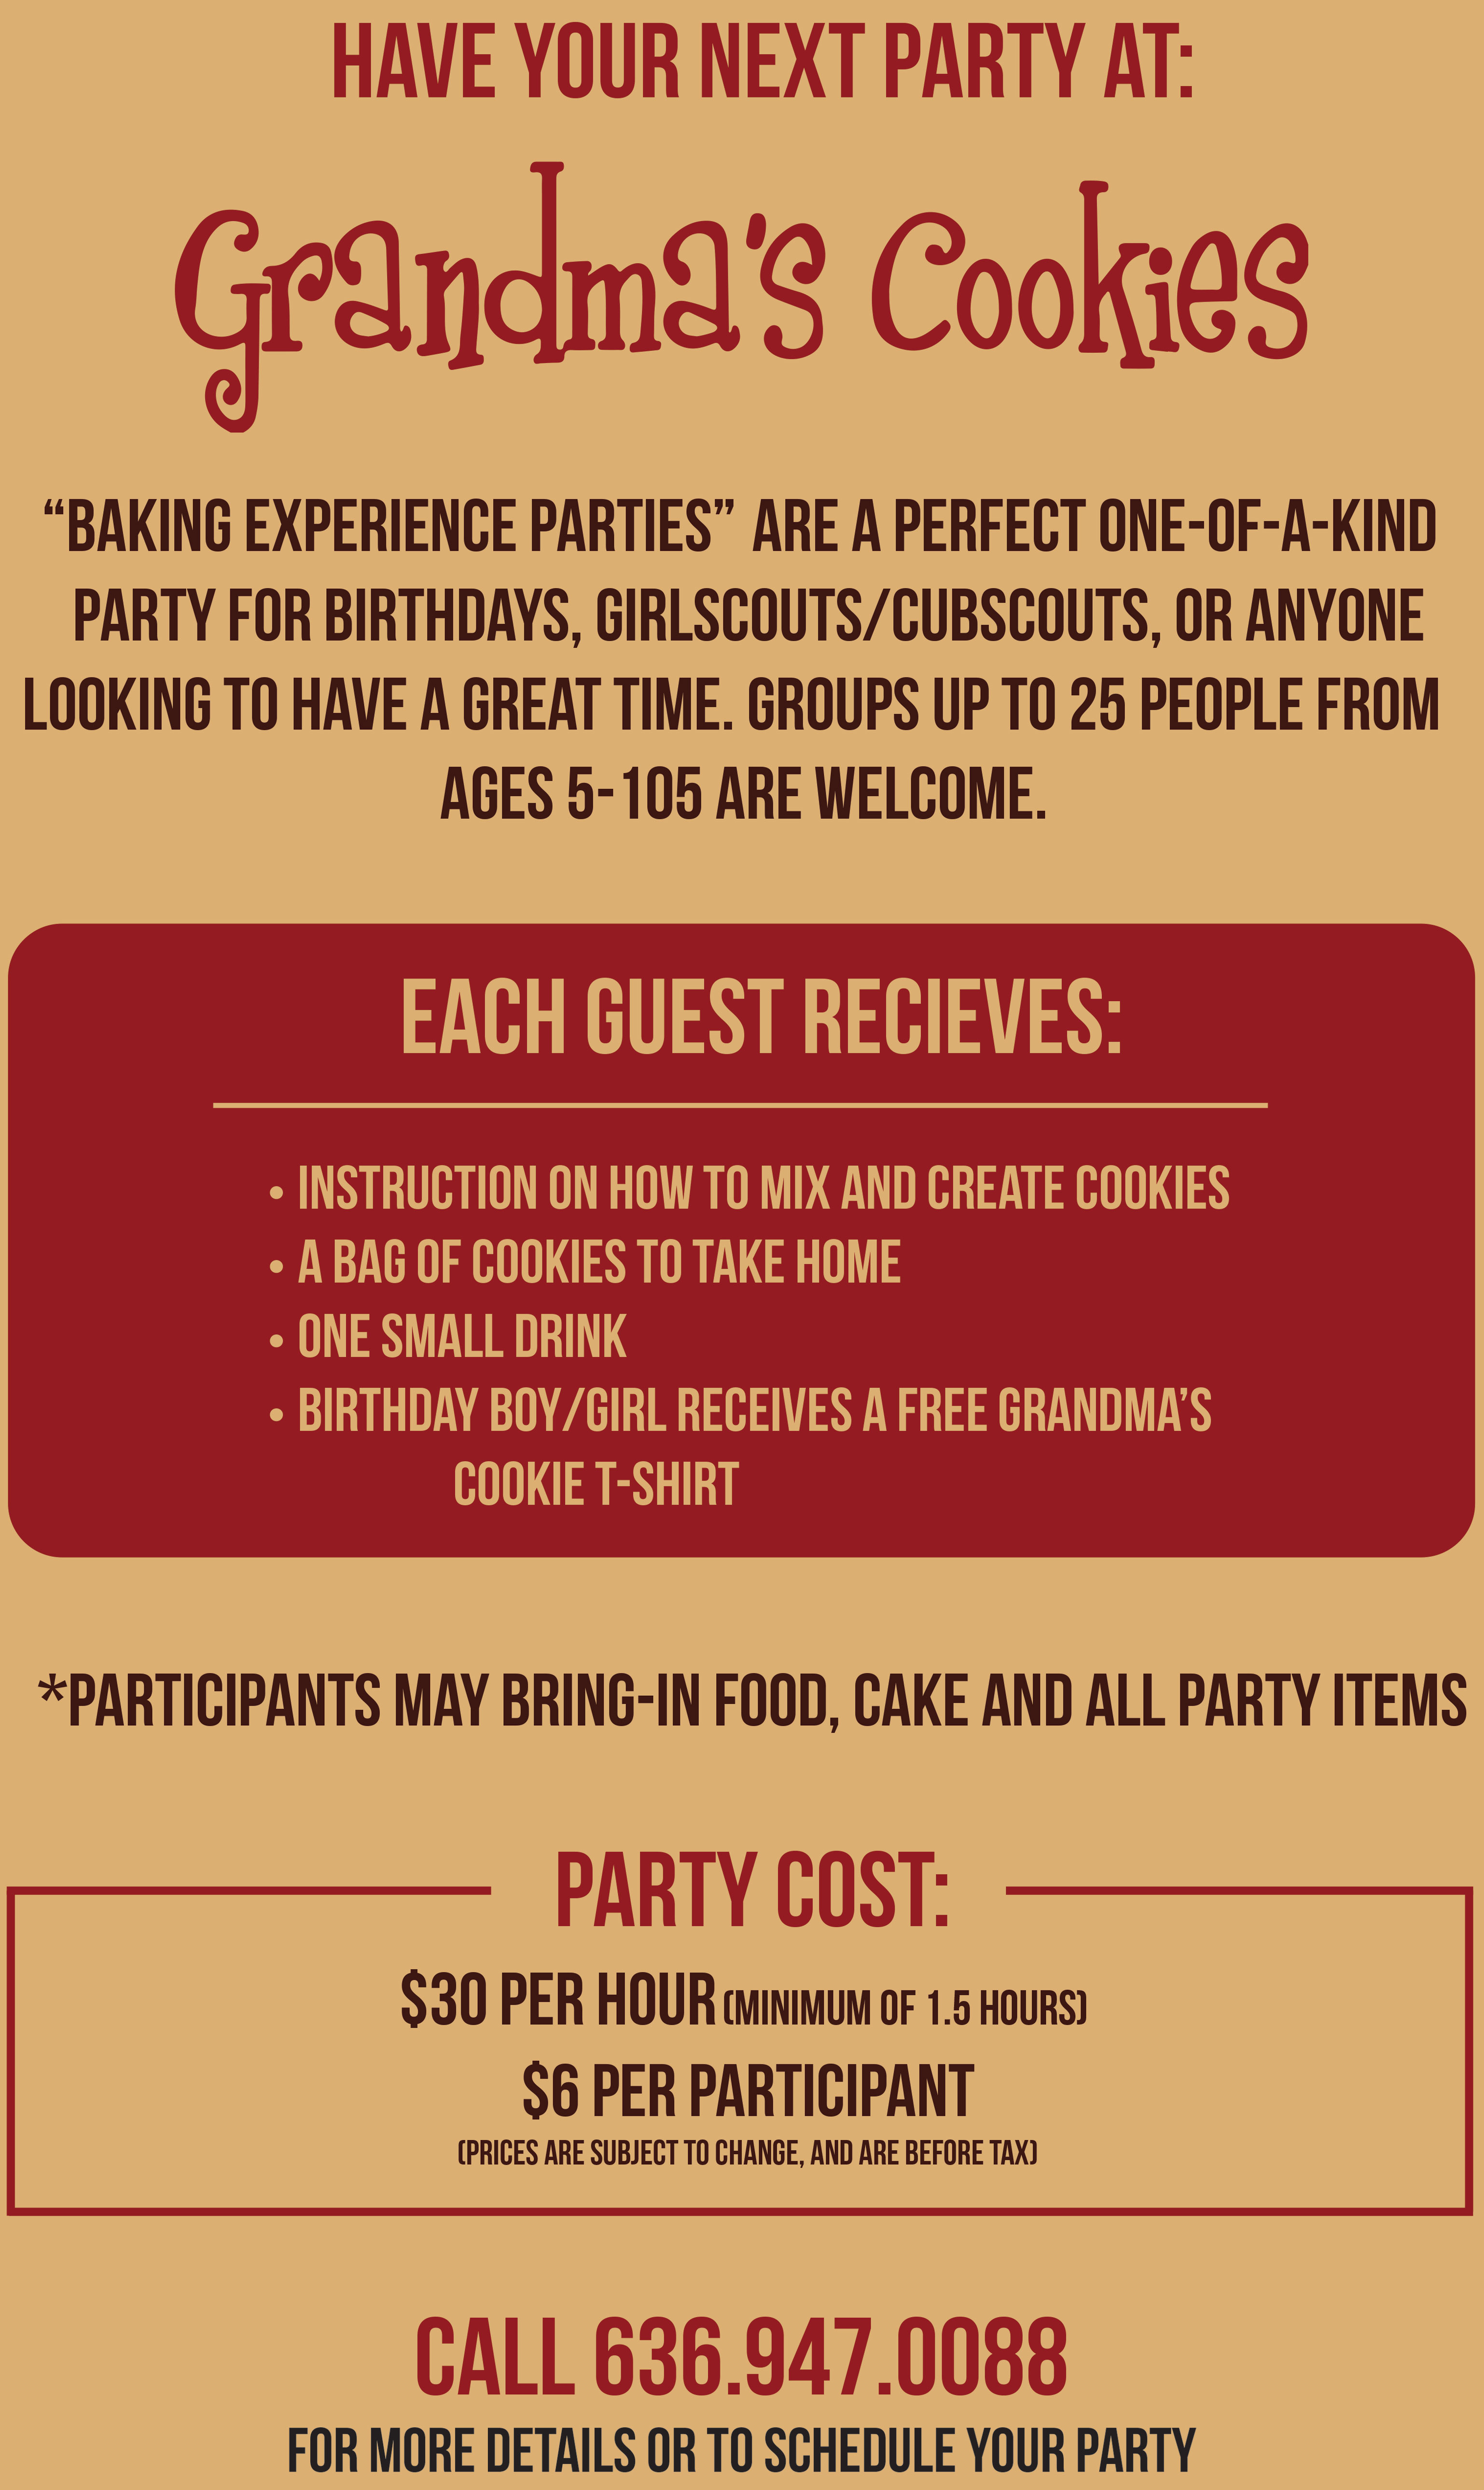 party-information-page.jpg